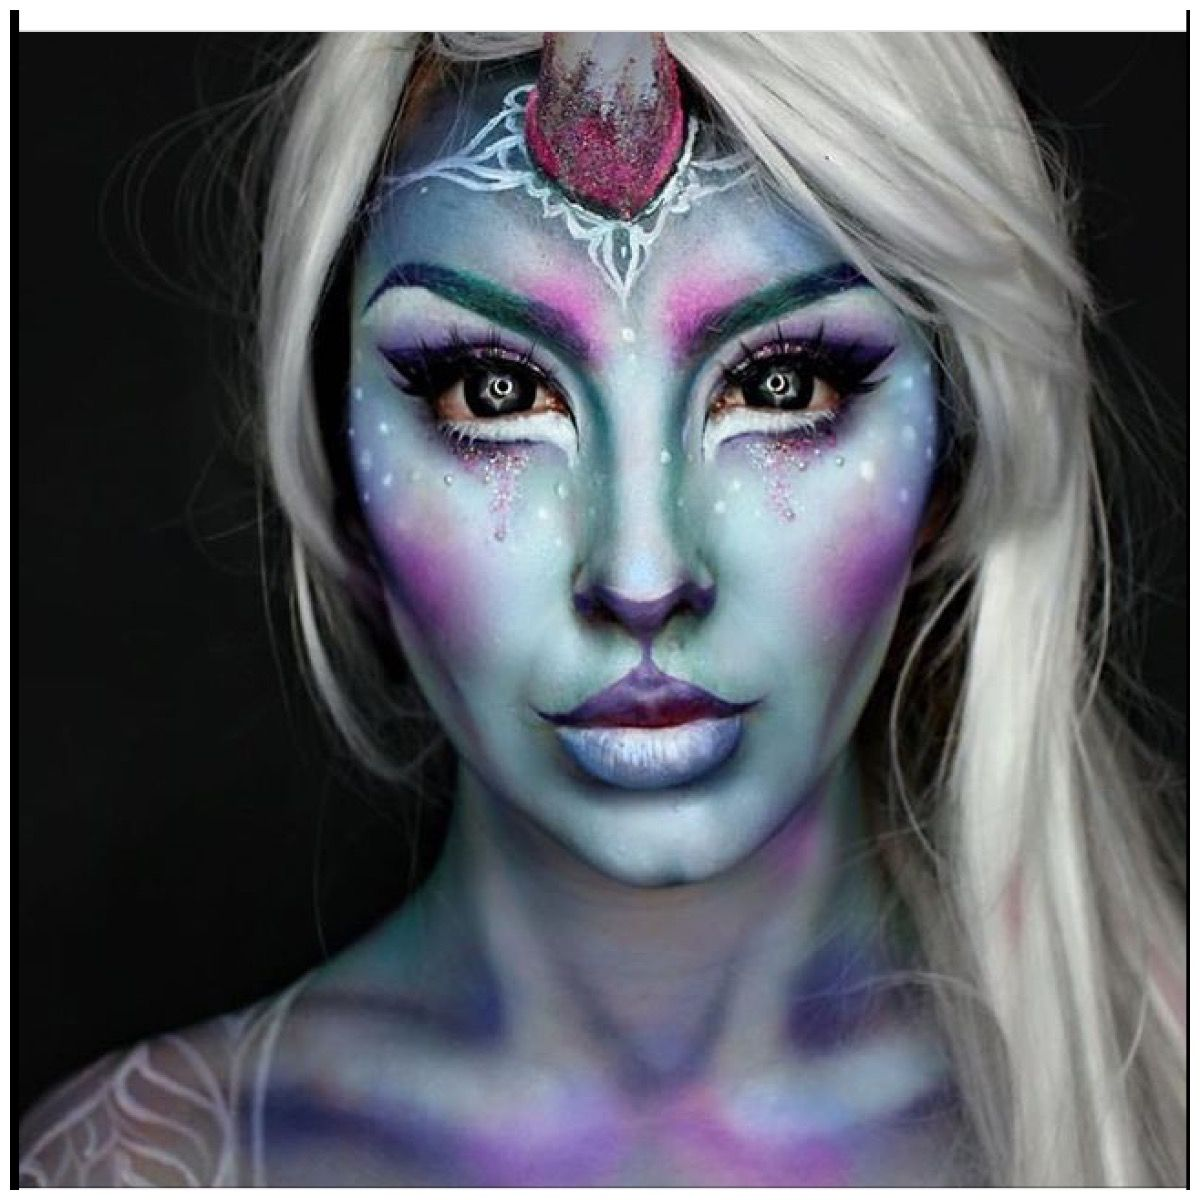 Pin by Ülle Noor on Face painting | Pinterest | Make up, Halloween ...